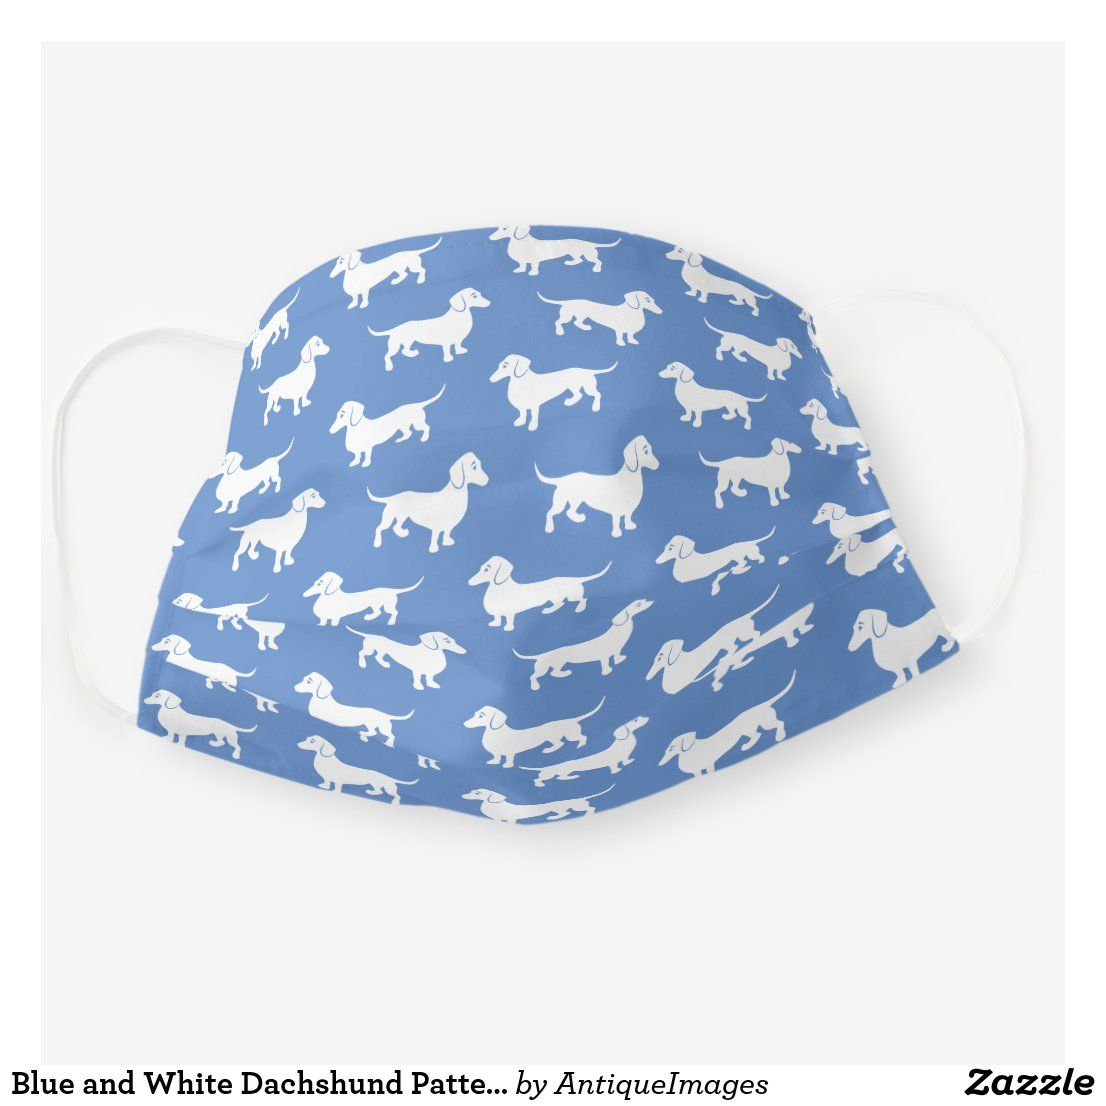 Diggy Christmas 2020 Hats Blue and White Dachshund Pattern Cloth Face Mask | Zazzle.in